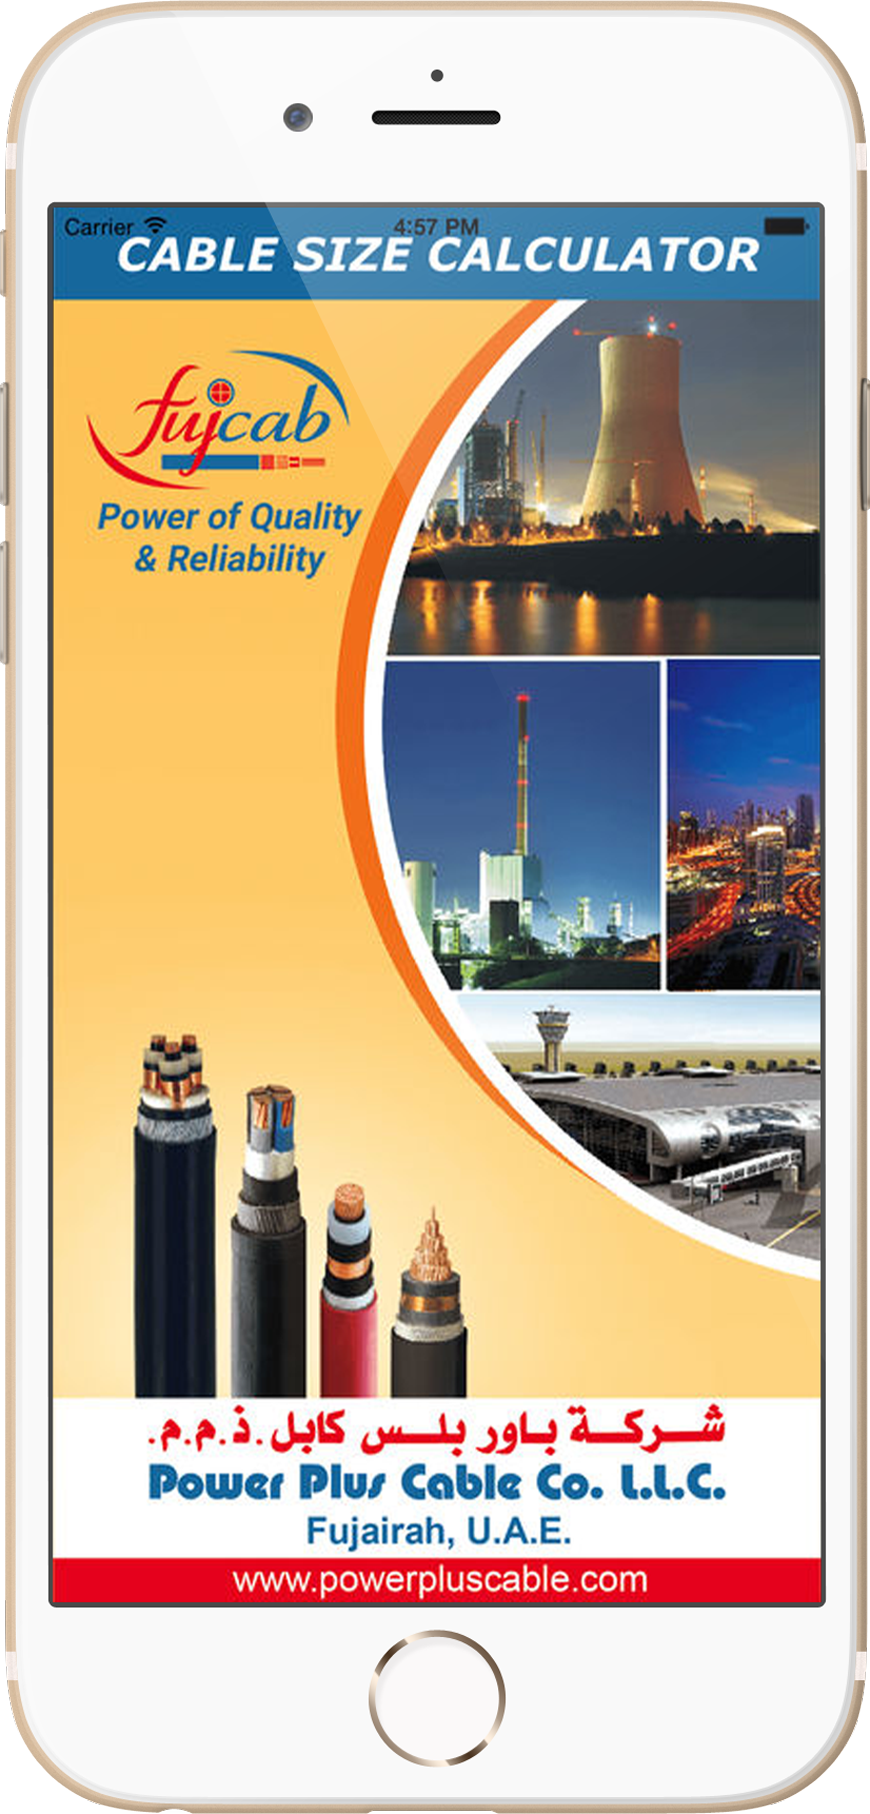 Power Cable Manufacturers Dubai High Low Voltage Copper Pvc 3 Phase Electrical Wiring Diagram In Uae Size Calculator Developed By Us Provides A Quick And Easy Way To Select The Suitable Sizes Of Cables Required For Electric Circuits